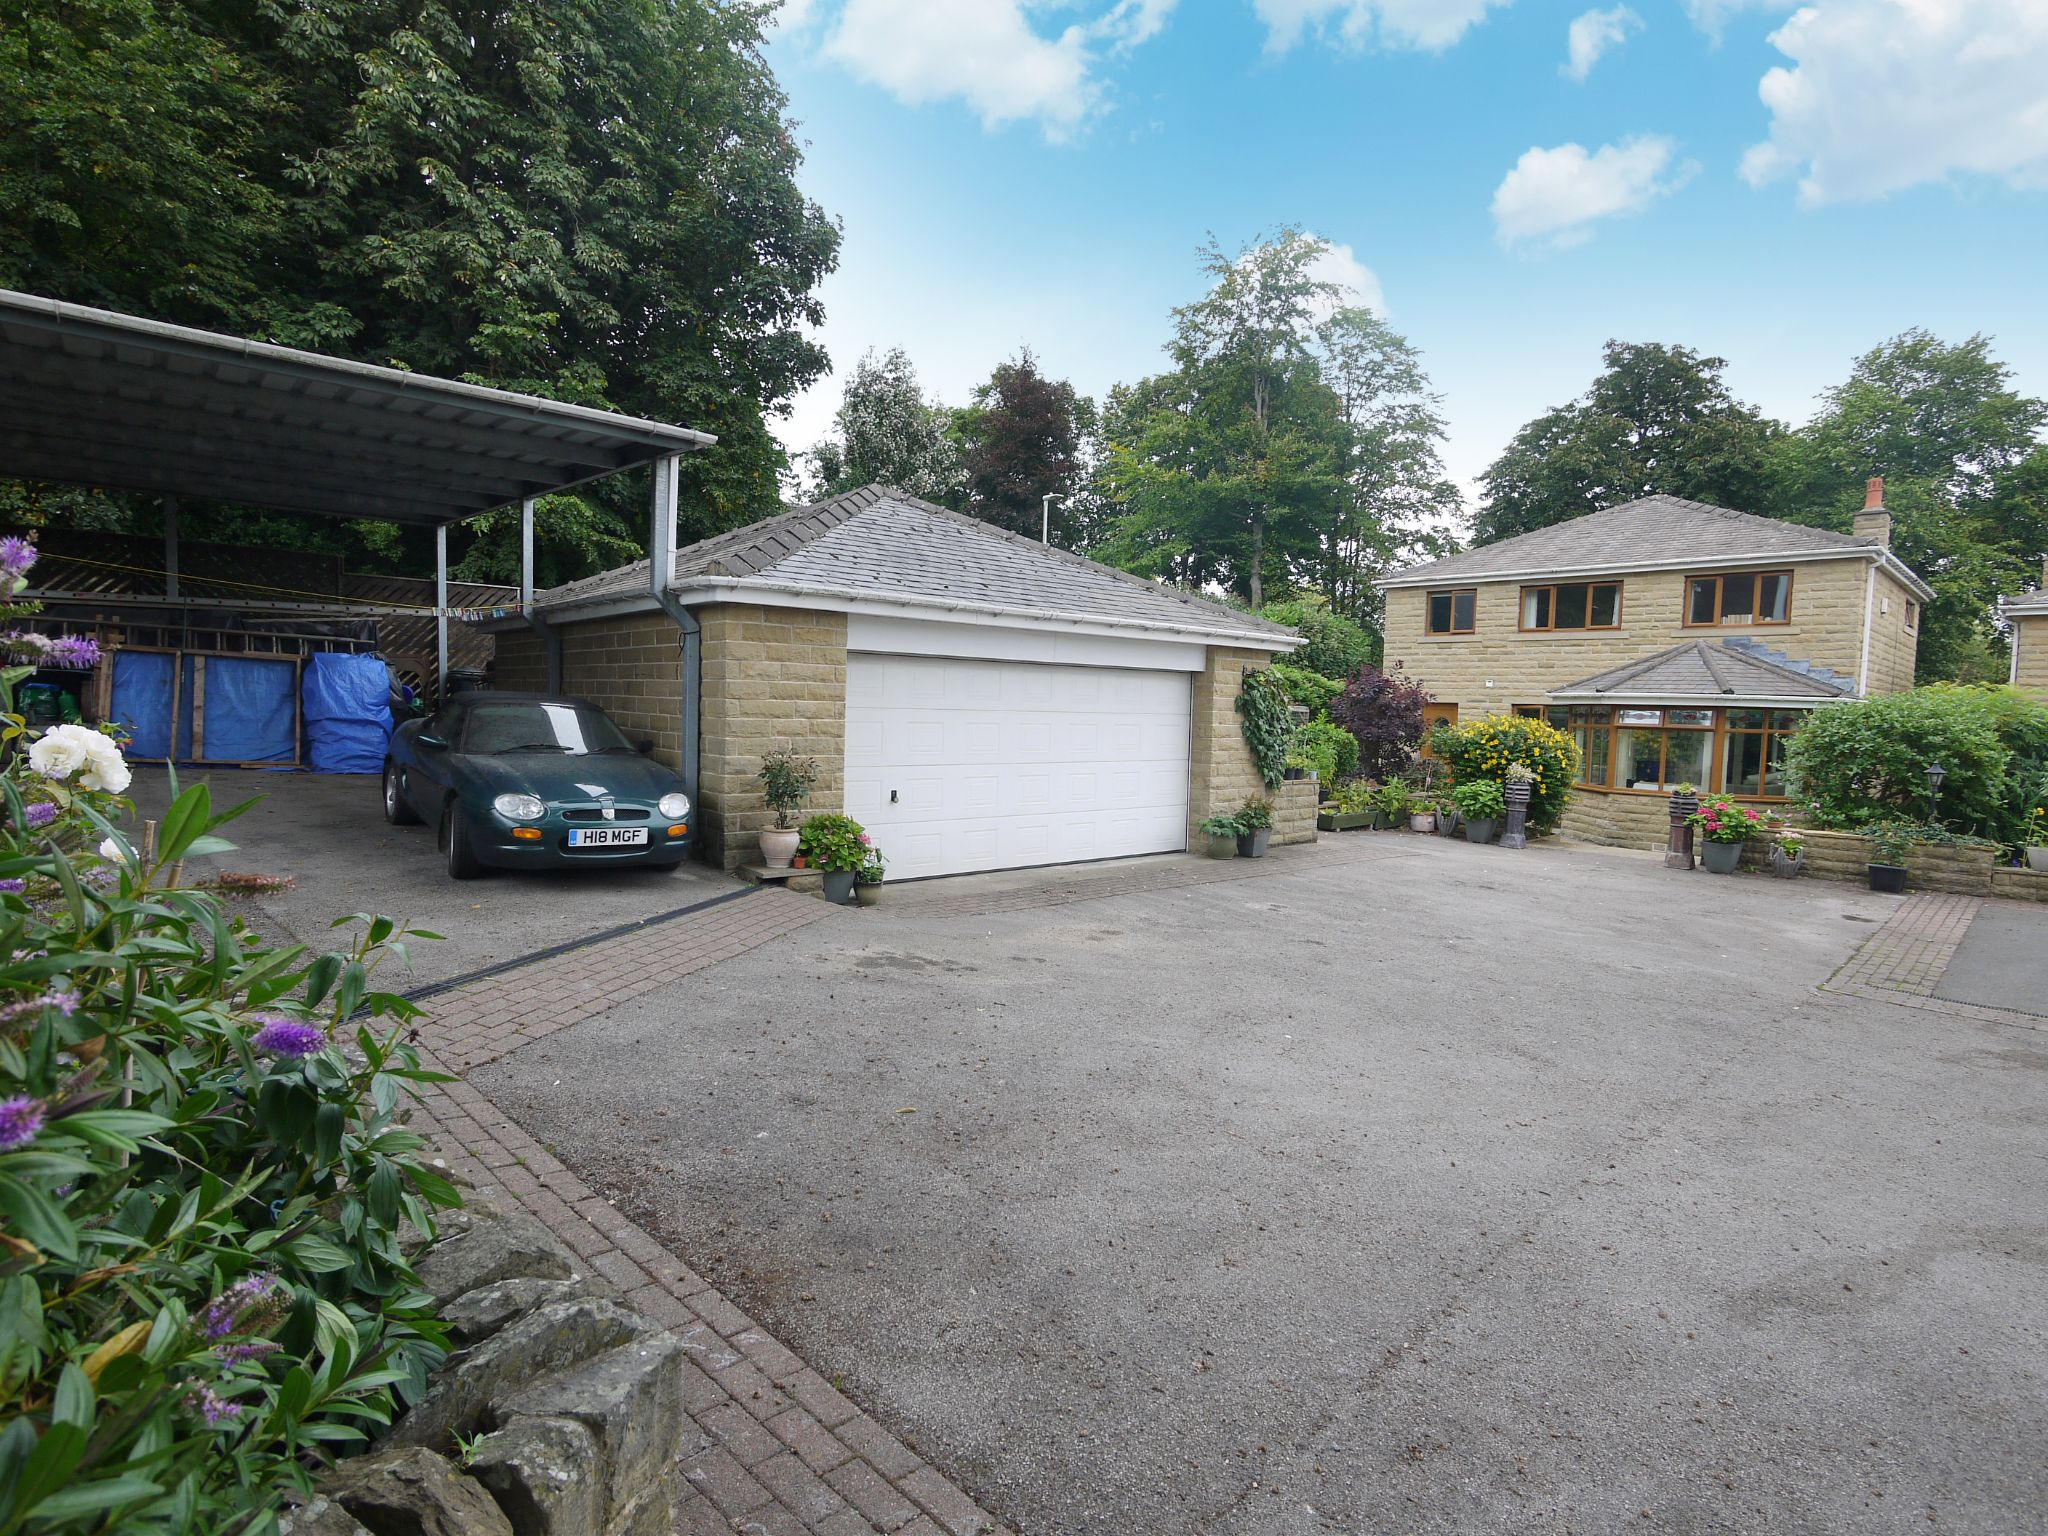 4 bedroom detached house For Sale in Brighouse - Main 1.